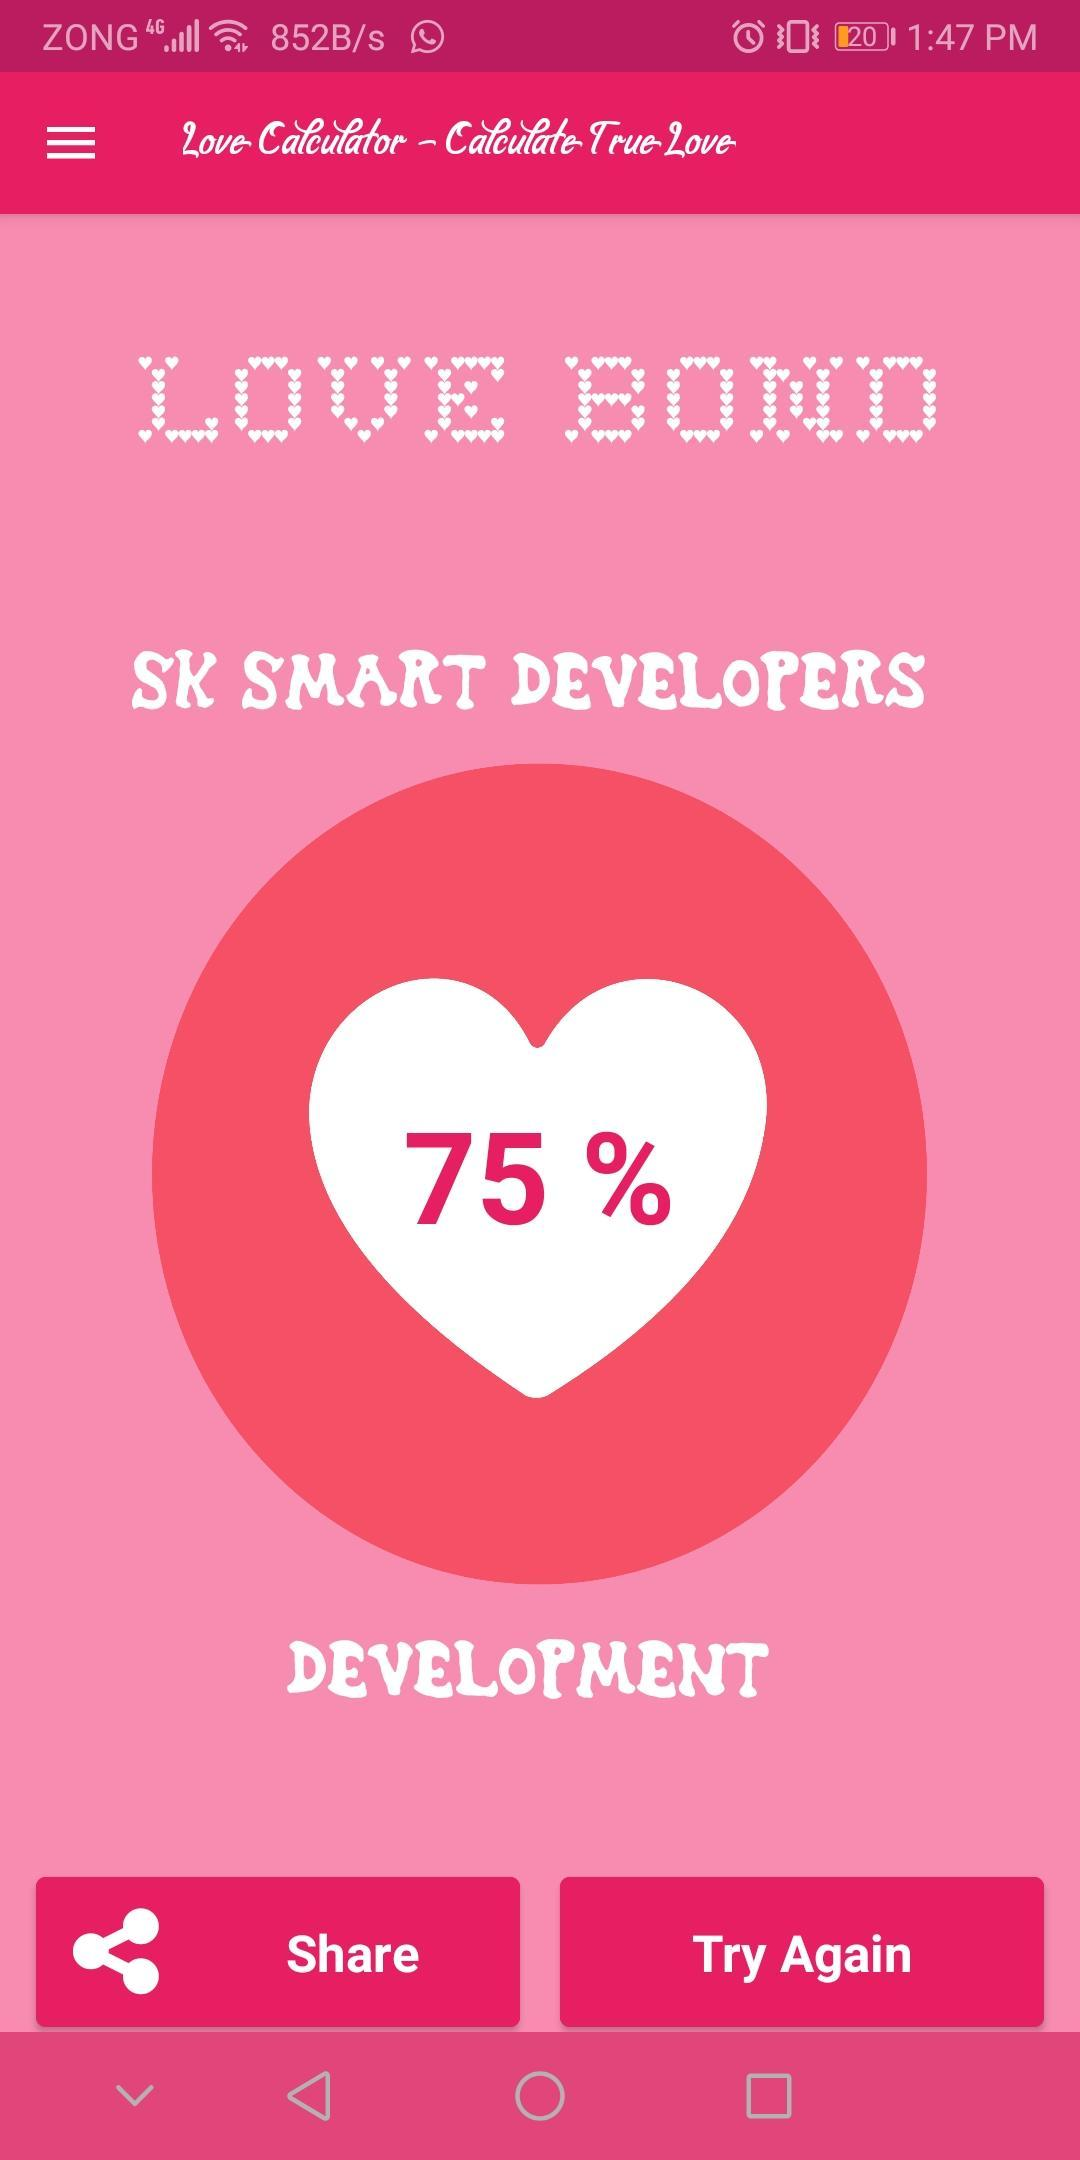 Love Calculator - Calculate True Love for Android - APK Download